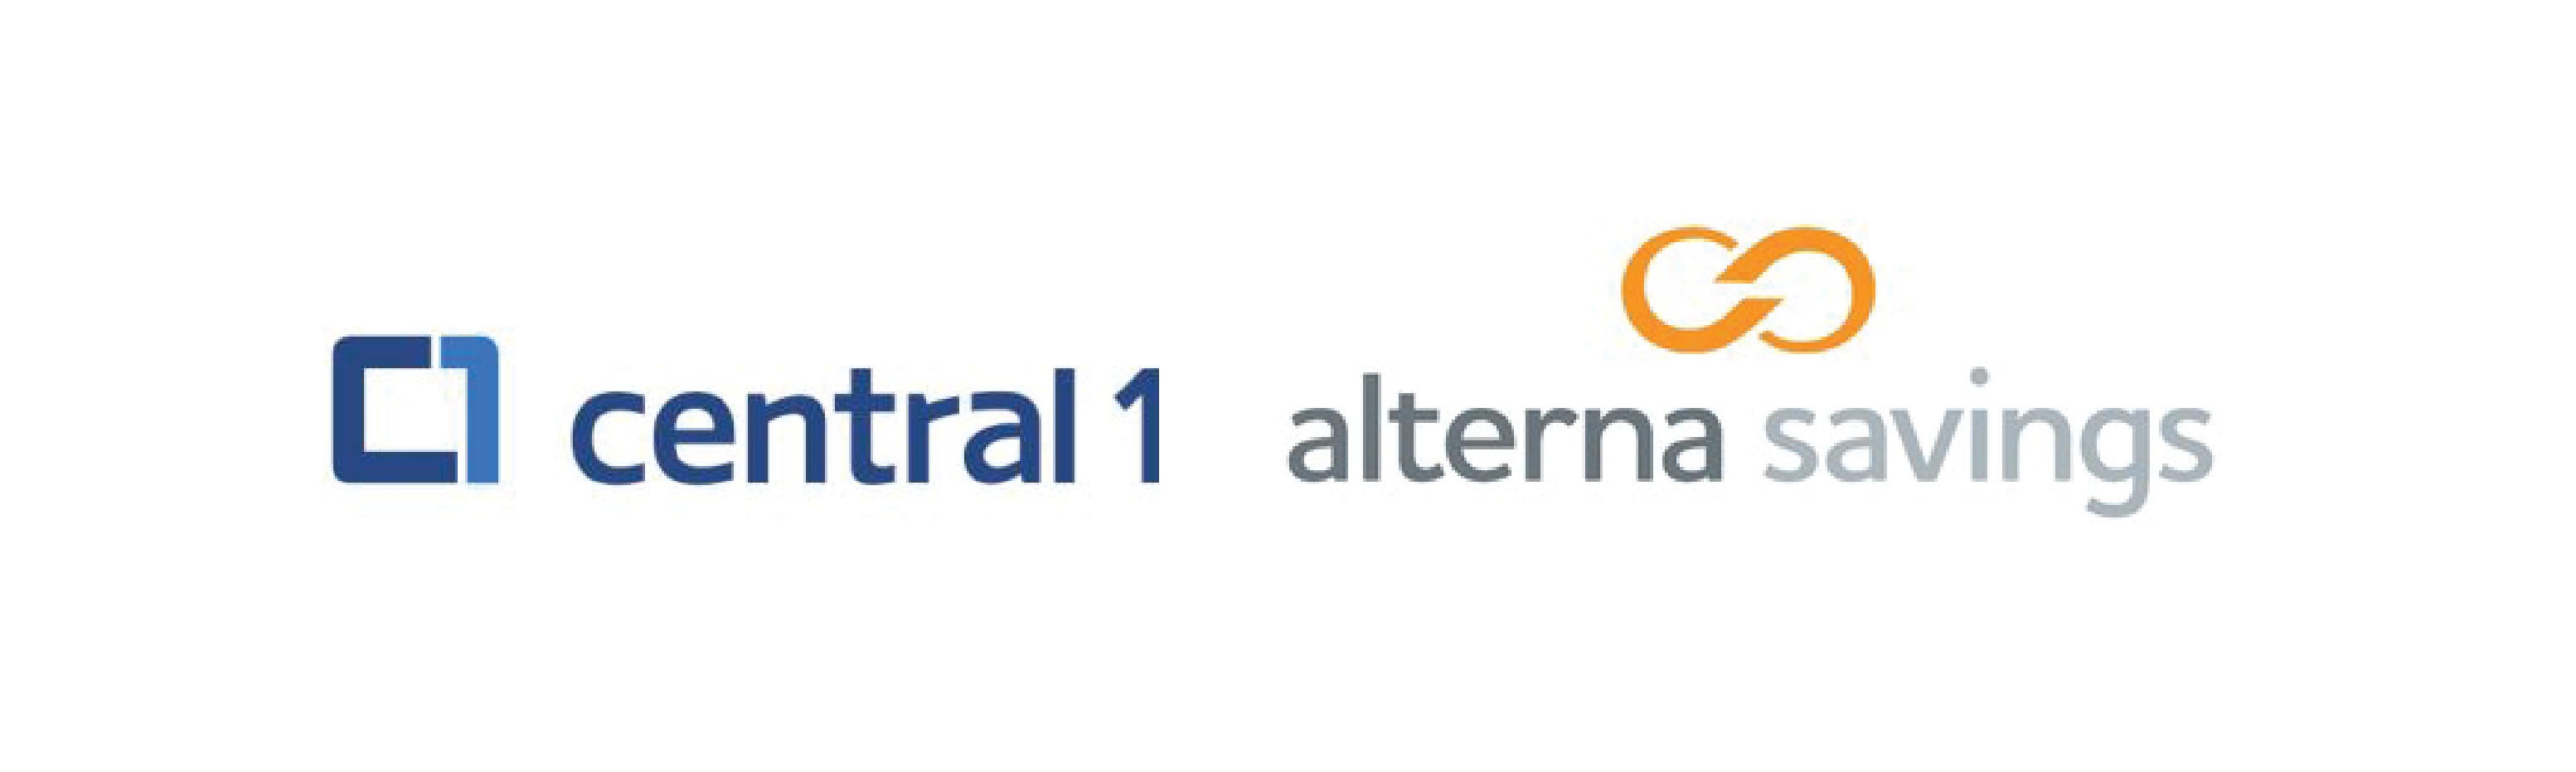 Central 1 and Alterna Savings partnership